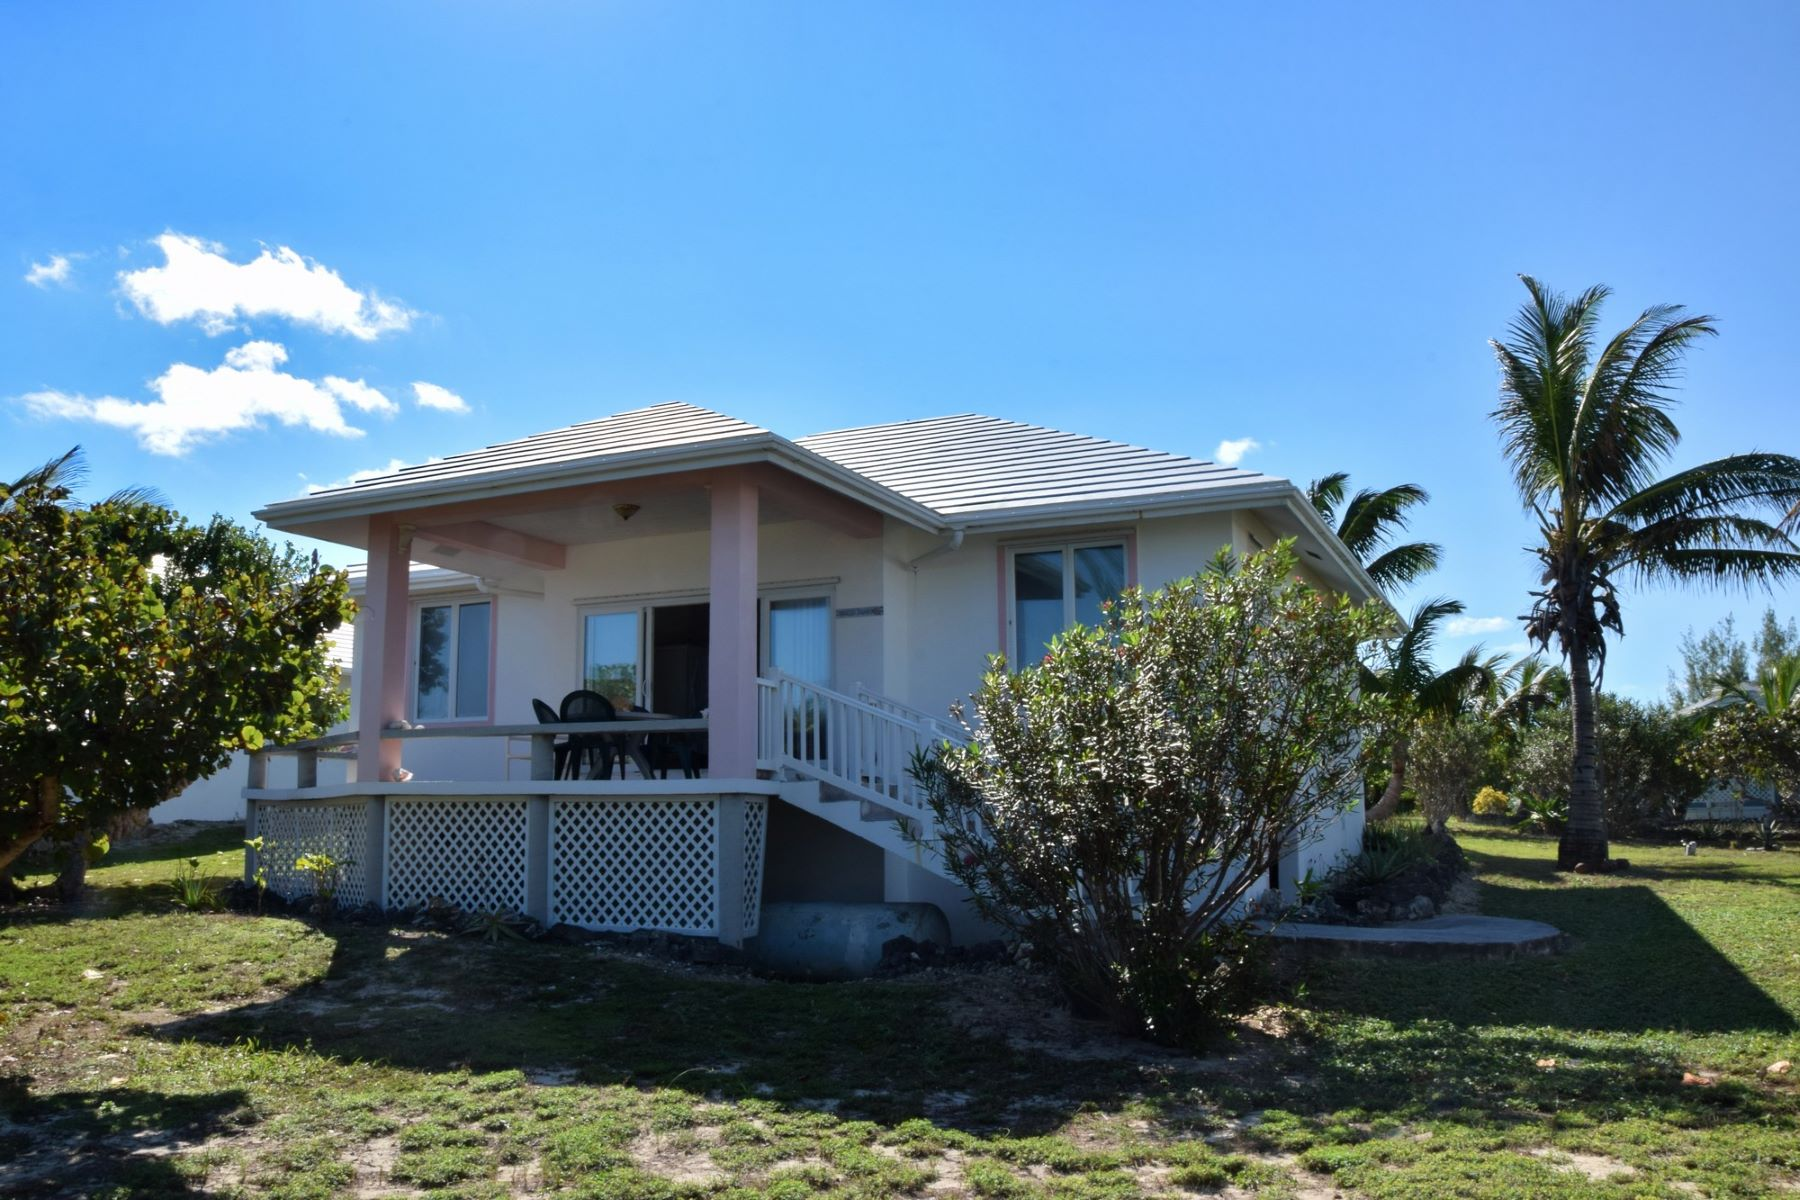 Single Family Home for Sale at Conch Pearl Cottage Green Turtle Cay, Abaco, Bahamas